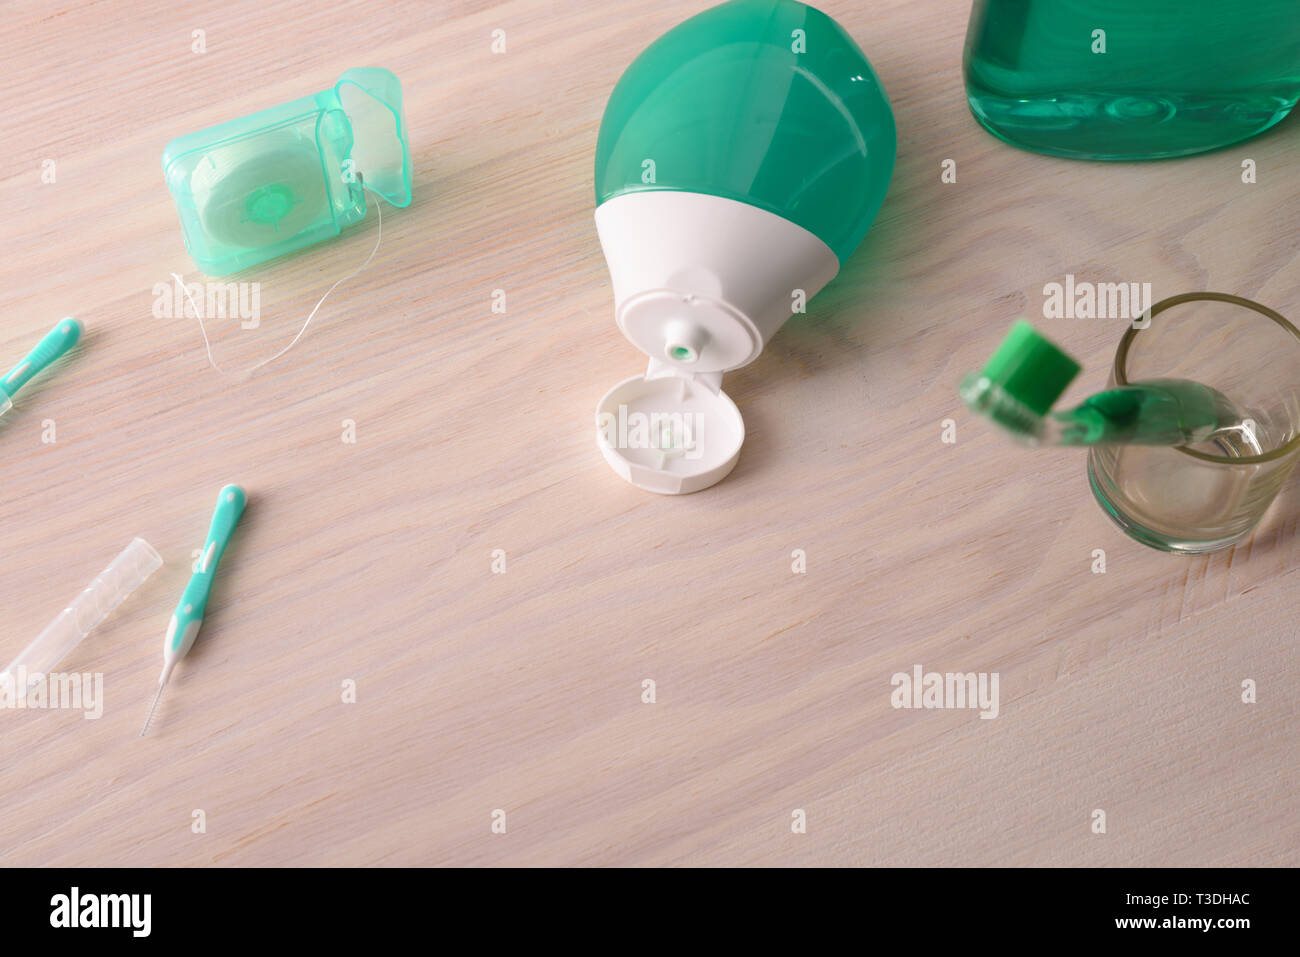 Tools for oral hygiene on wooden table. Horizontal composition. Front view. - Stock Image